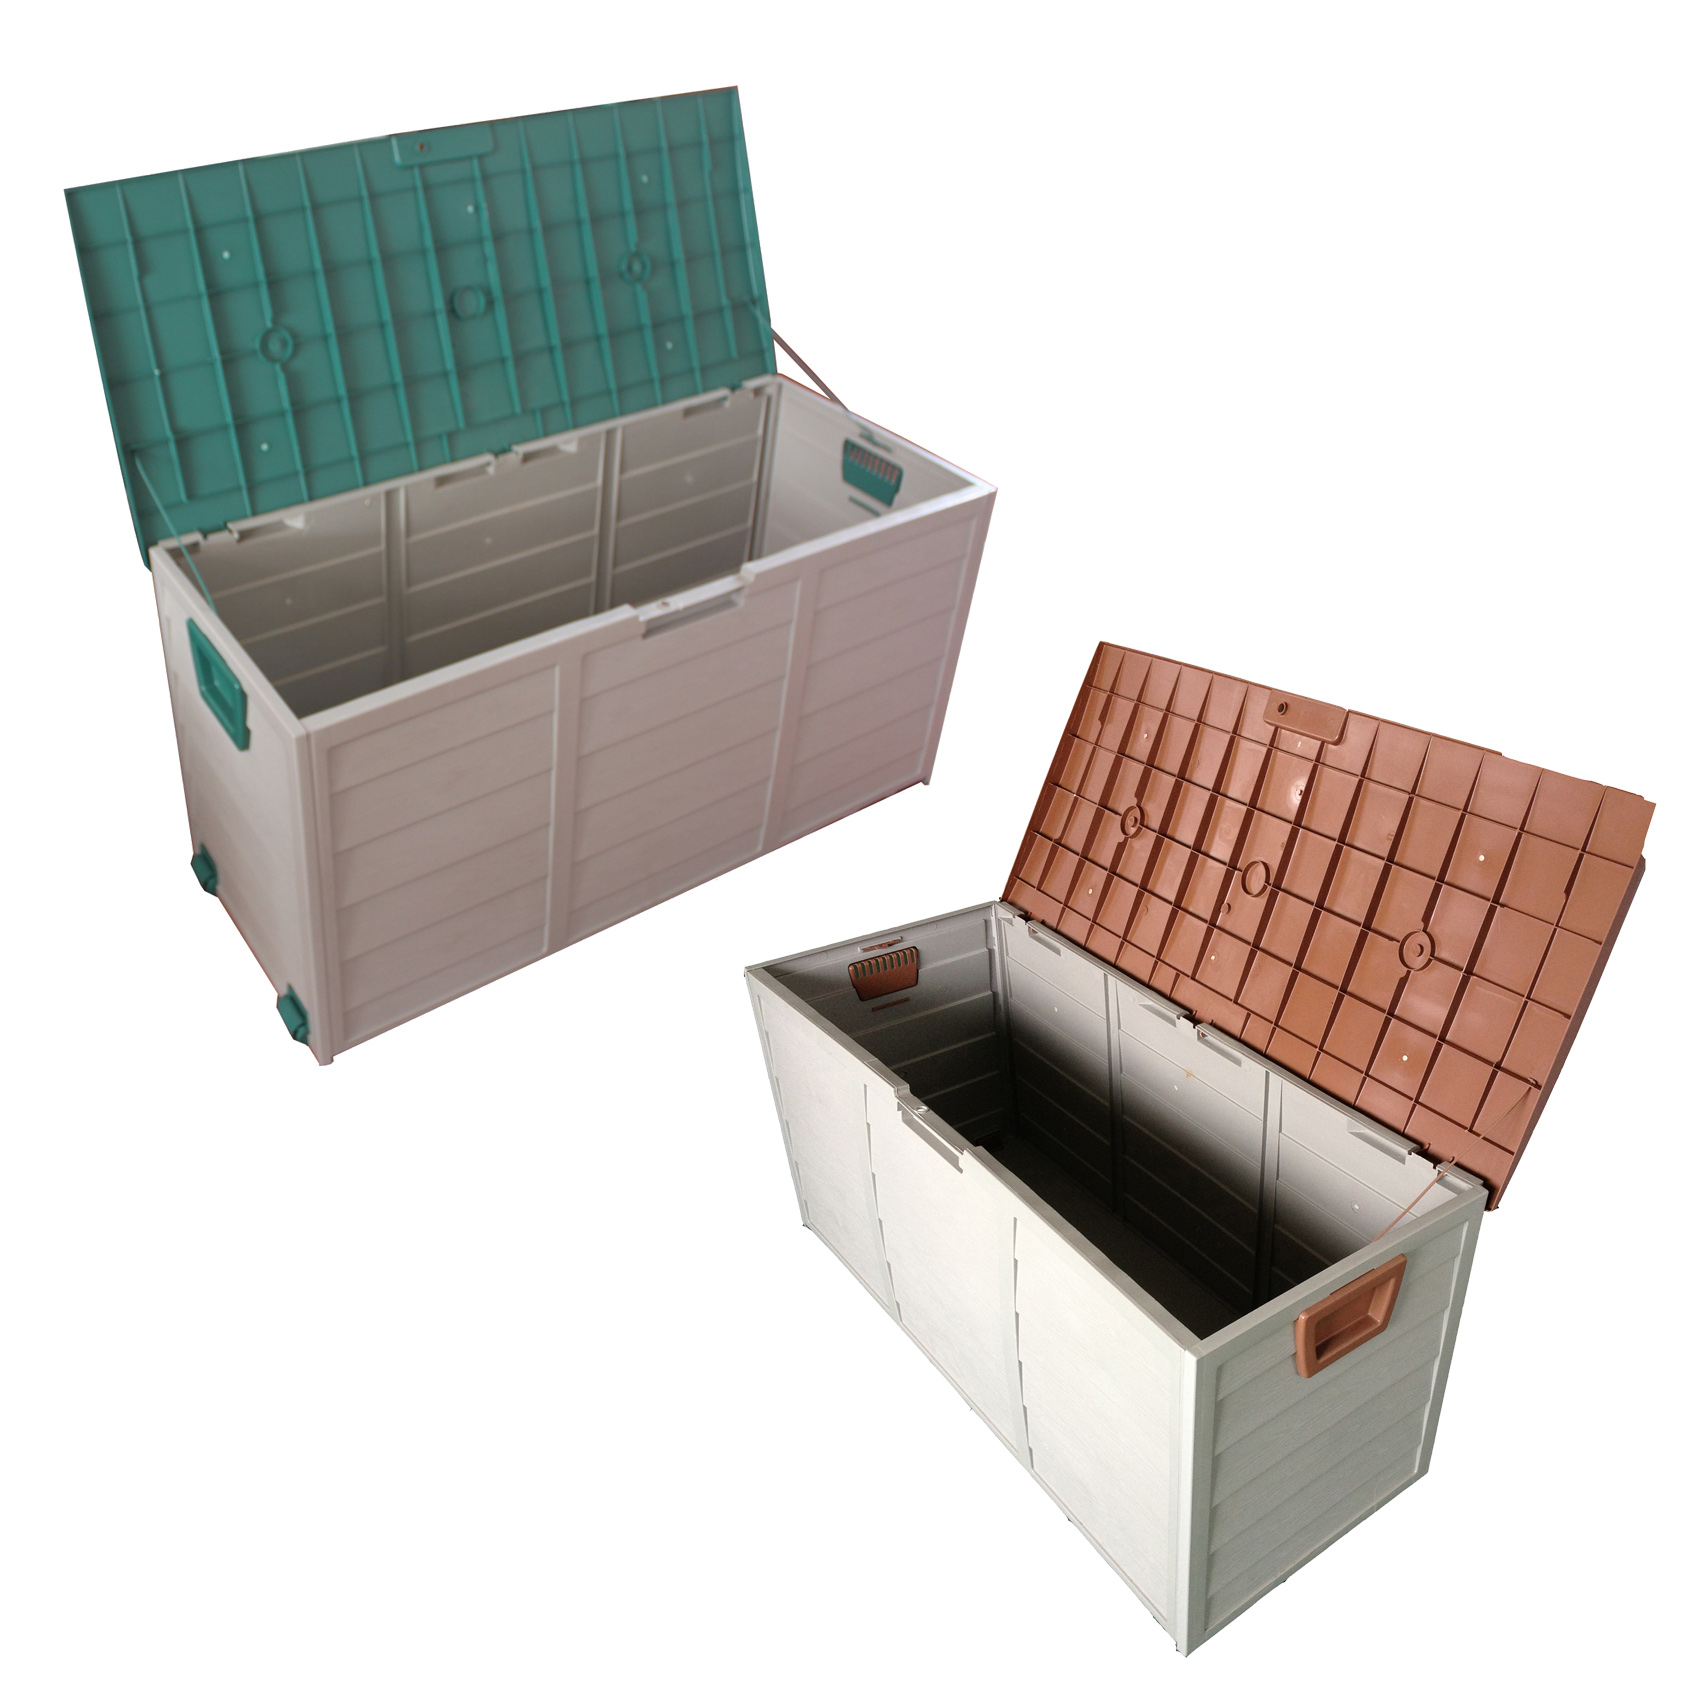 Outdoor Storage Cabinets With Doors Poker Table Woodworking Plans Free Plastic Outdoor Storage Box